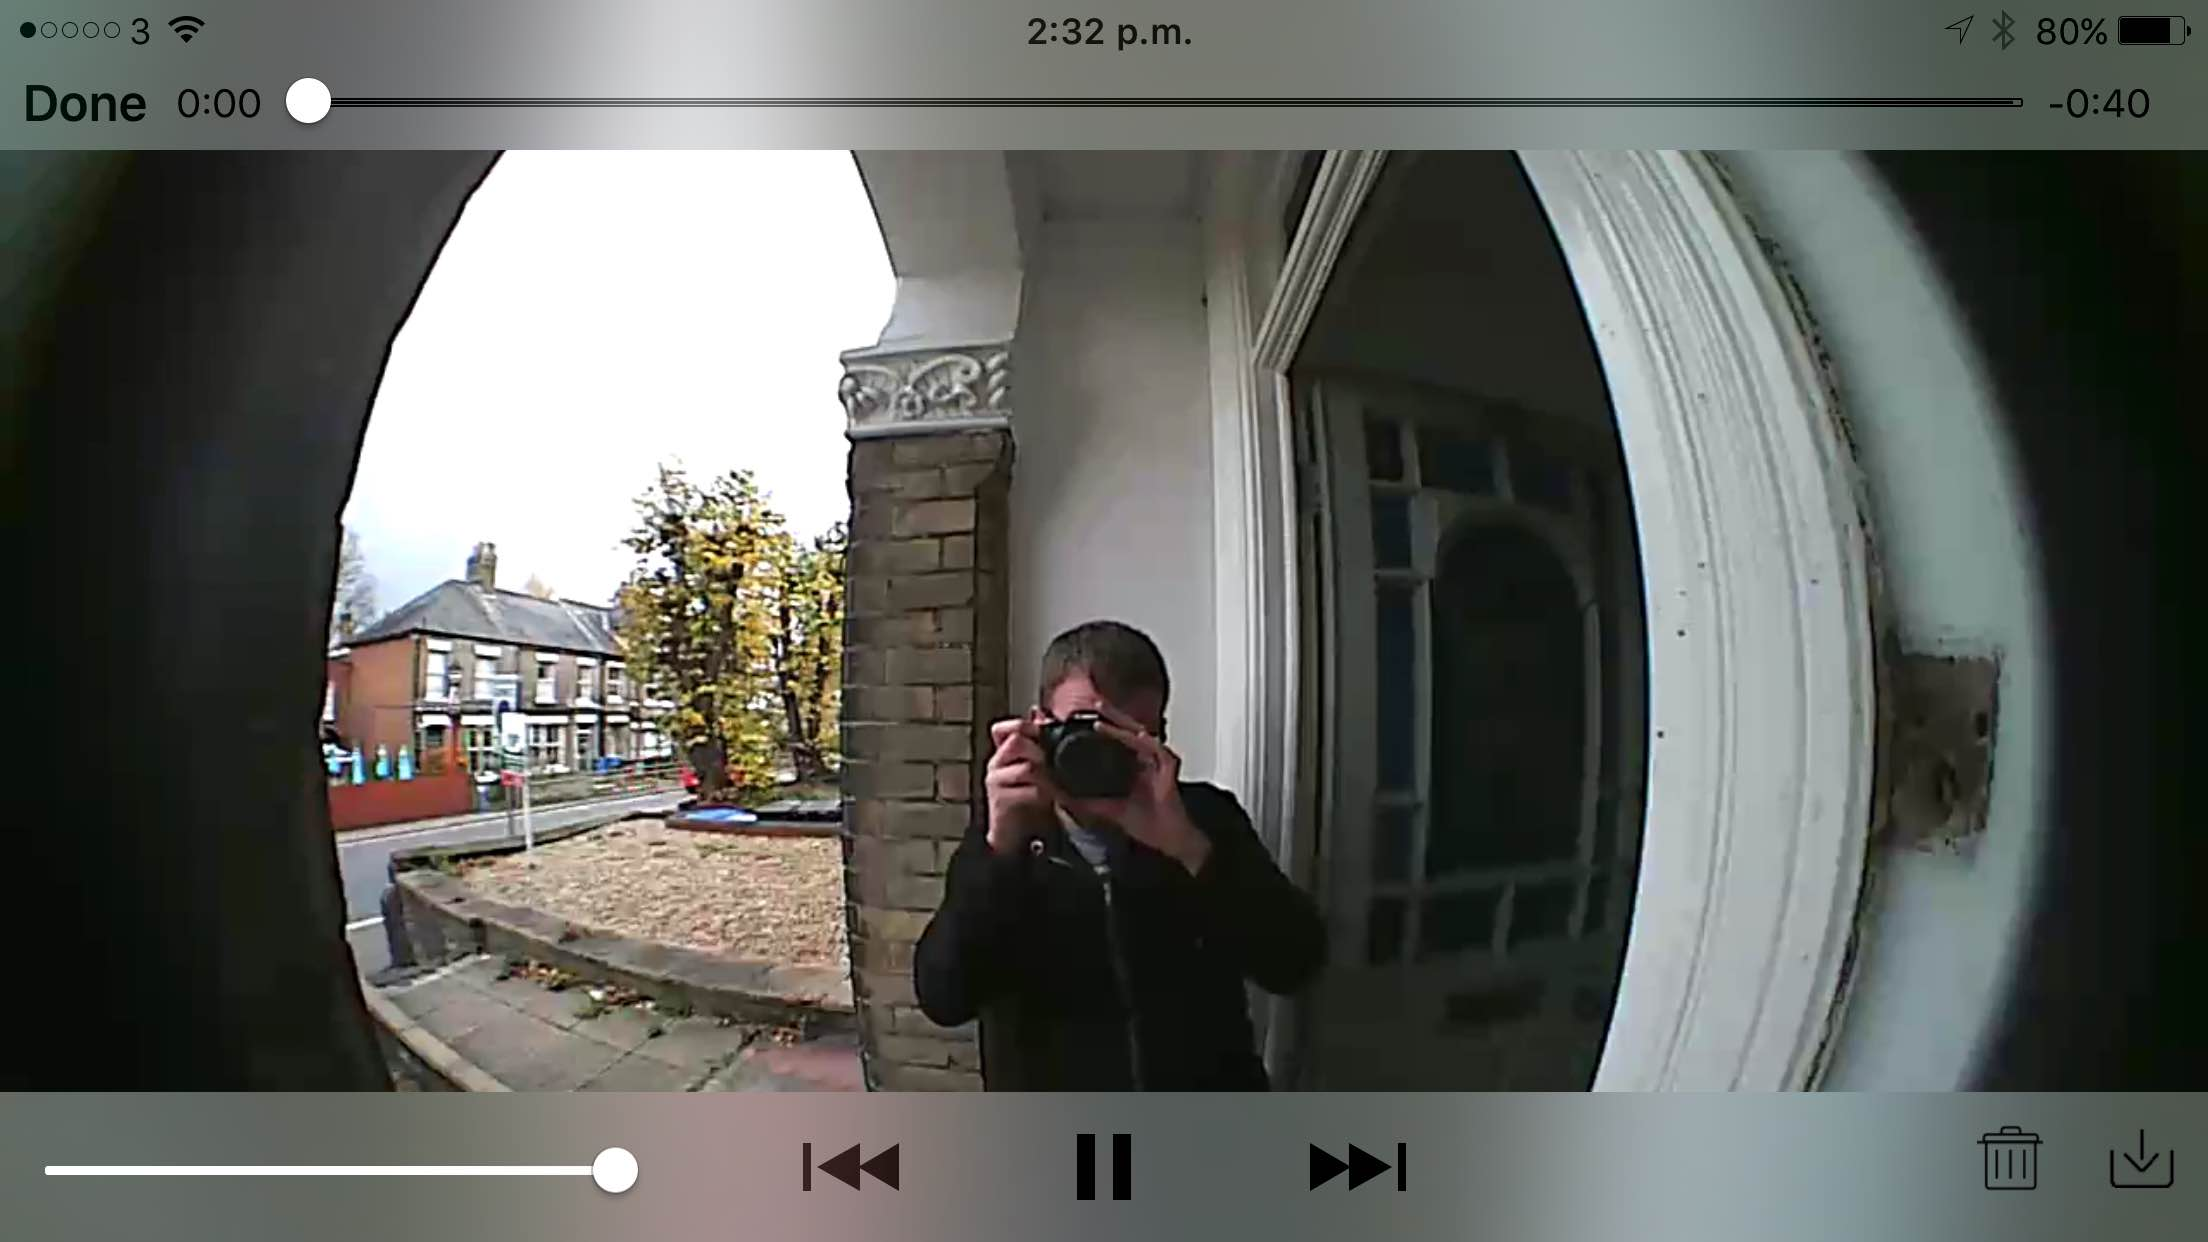 Ring's video doorbell lets me banish unwanted visitors